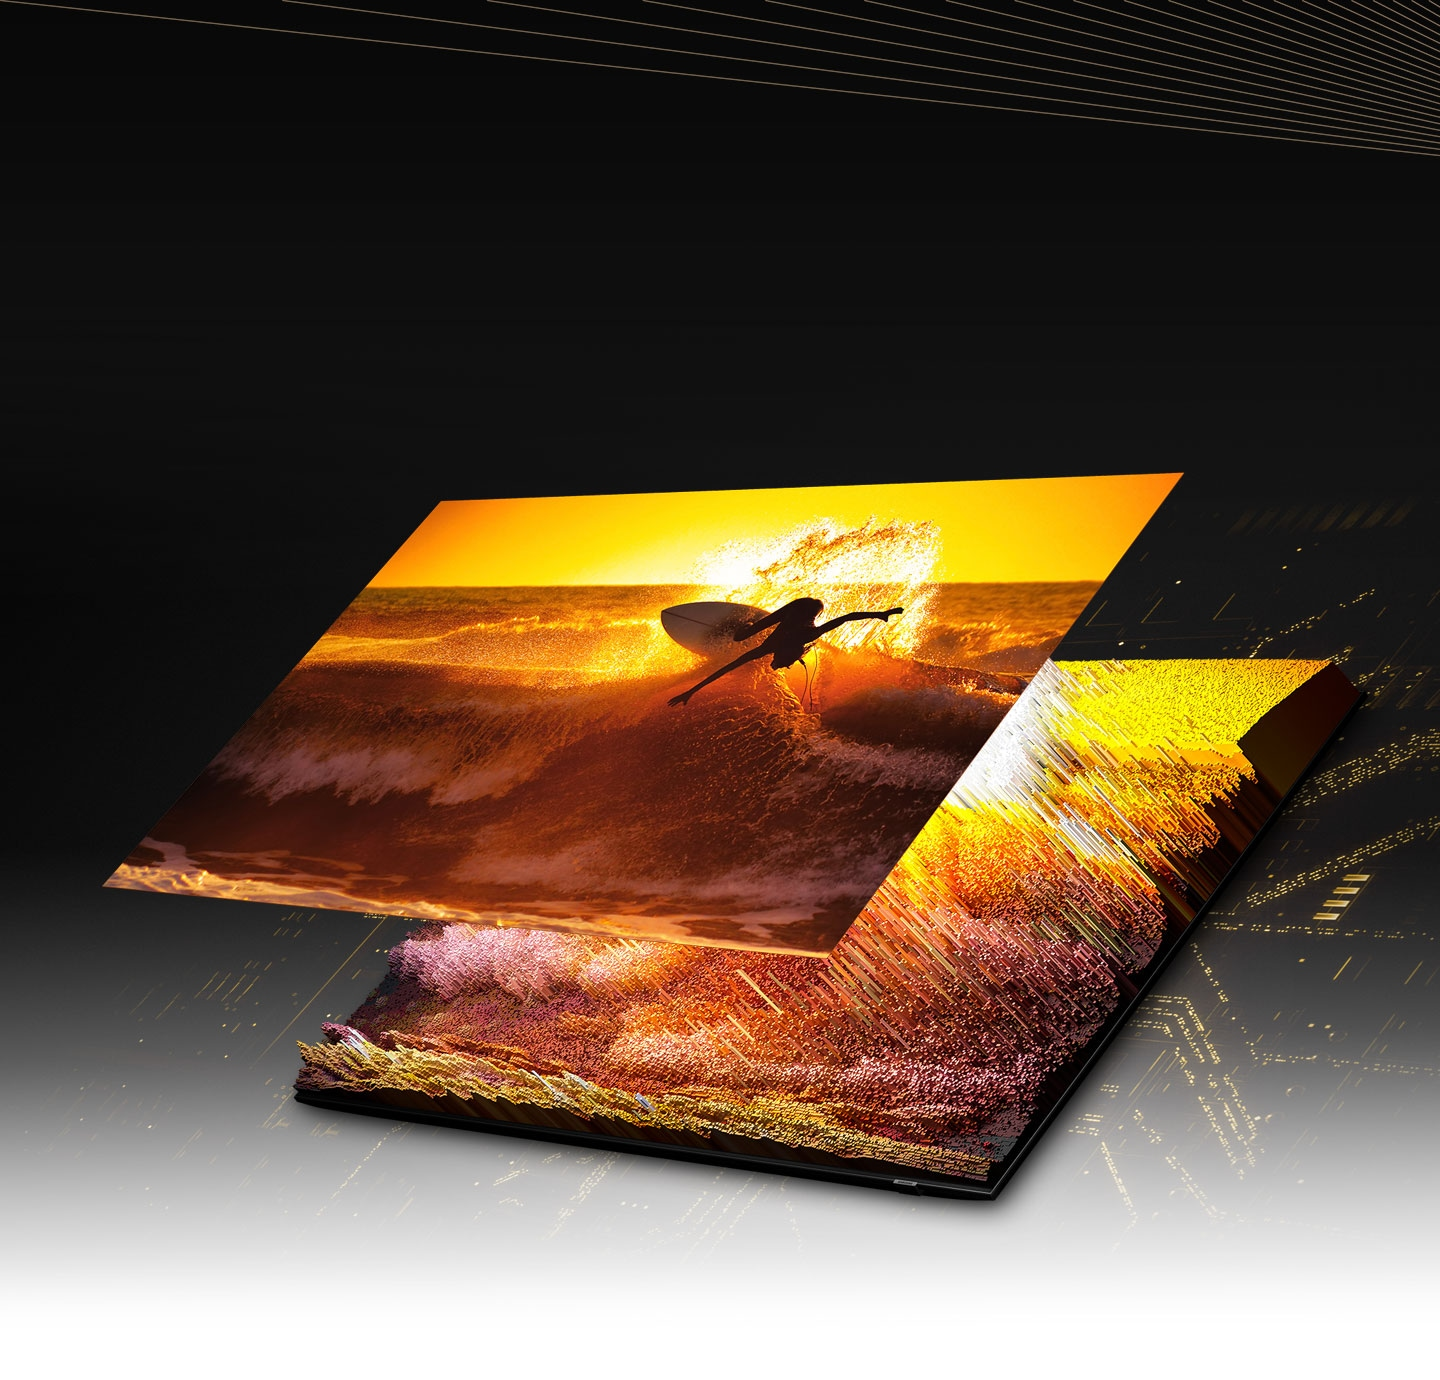 Through the Quantum Mini LED and microlayer, the image of a surfer on the screen is displayed in detail in bright and dark areas, showing very clearly.